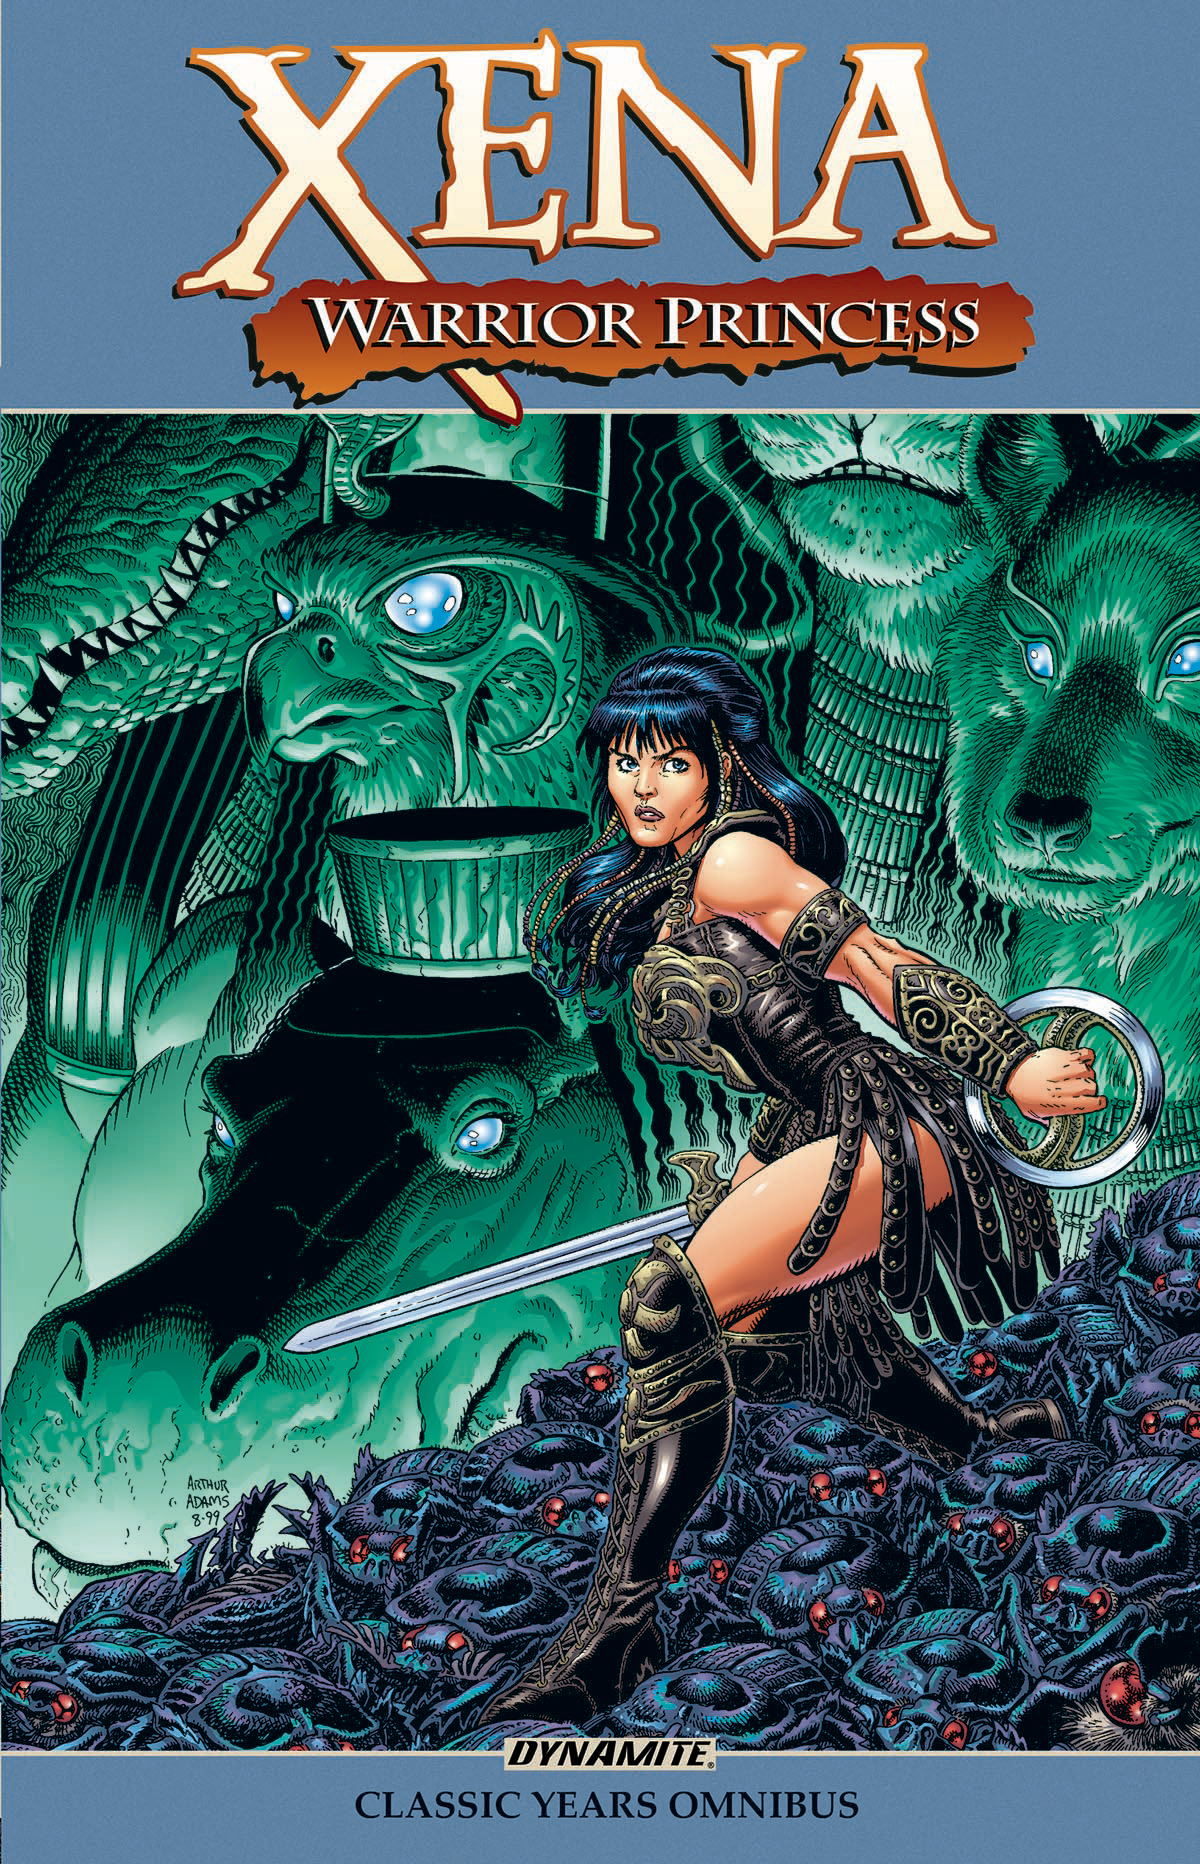 XENA WARRIOR PRINCESS CLASSIC YEARS OMNIBUS TP